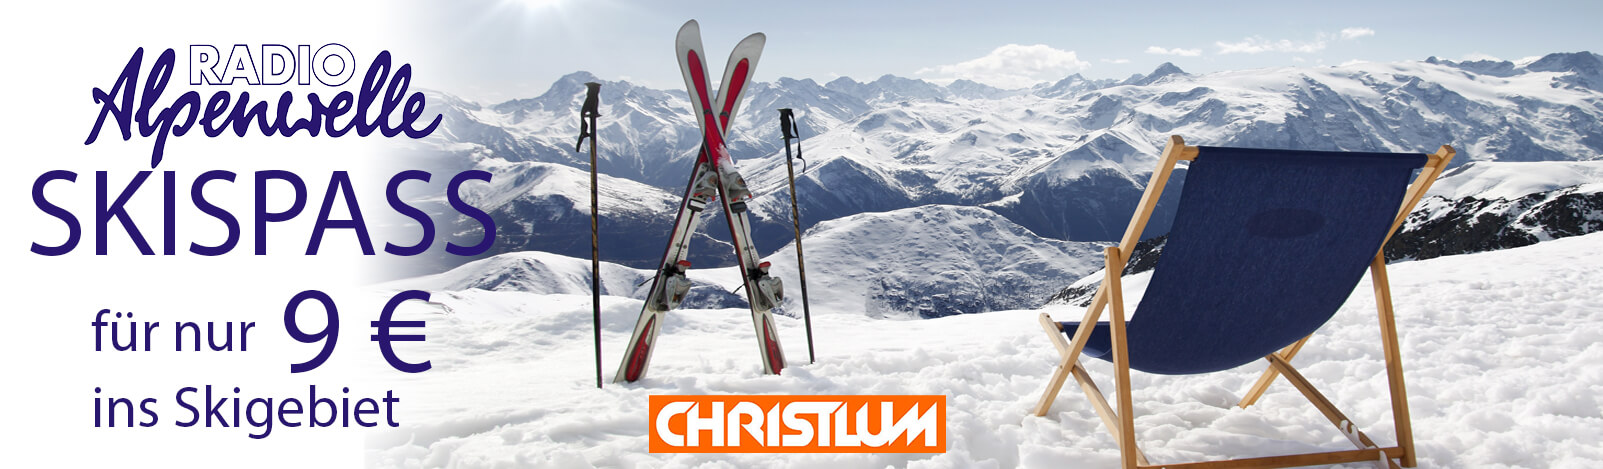 Alpenwelle Skispass 2020